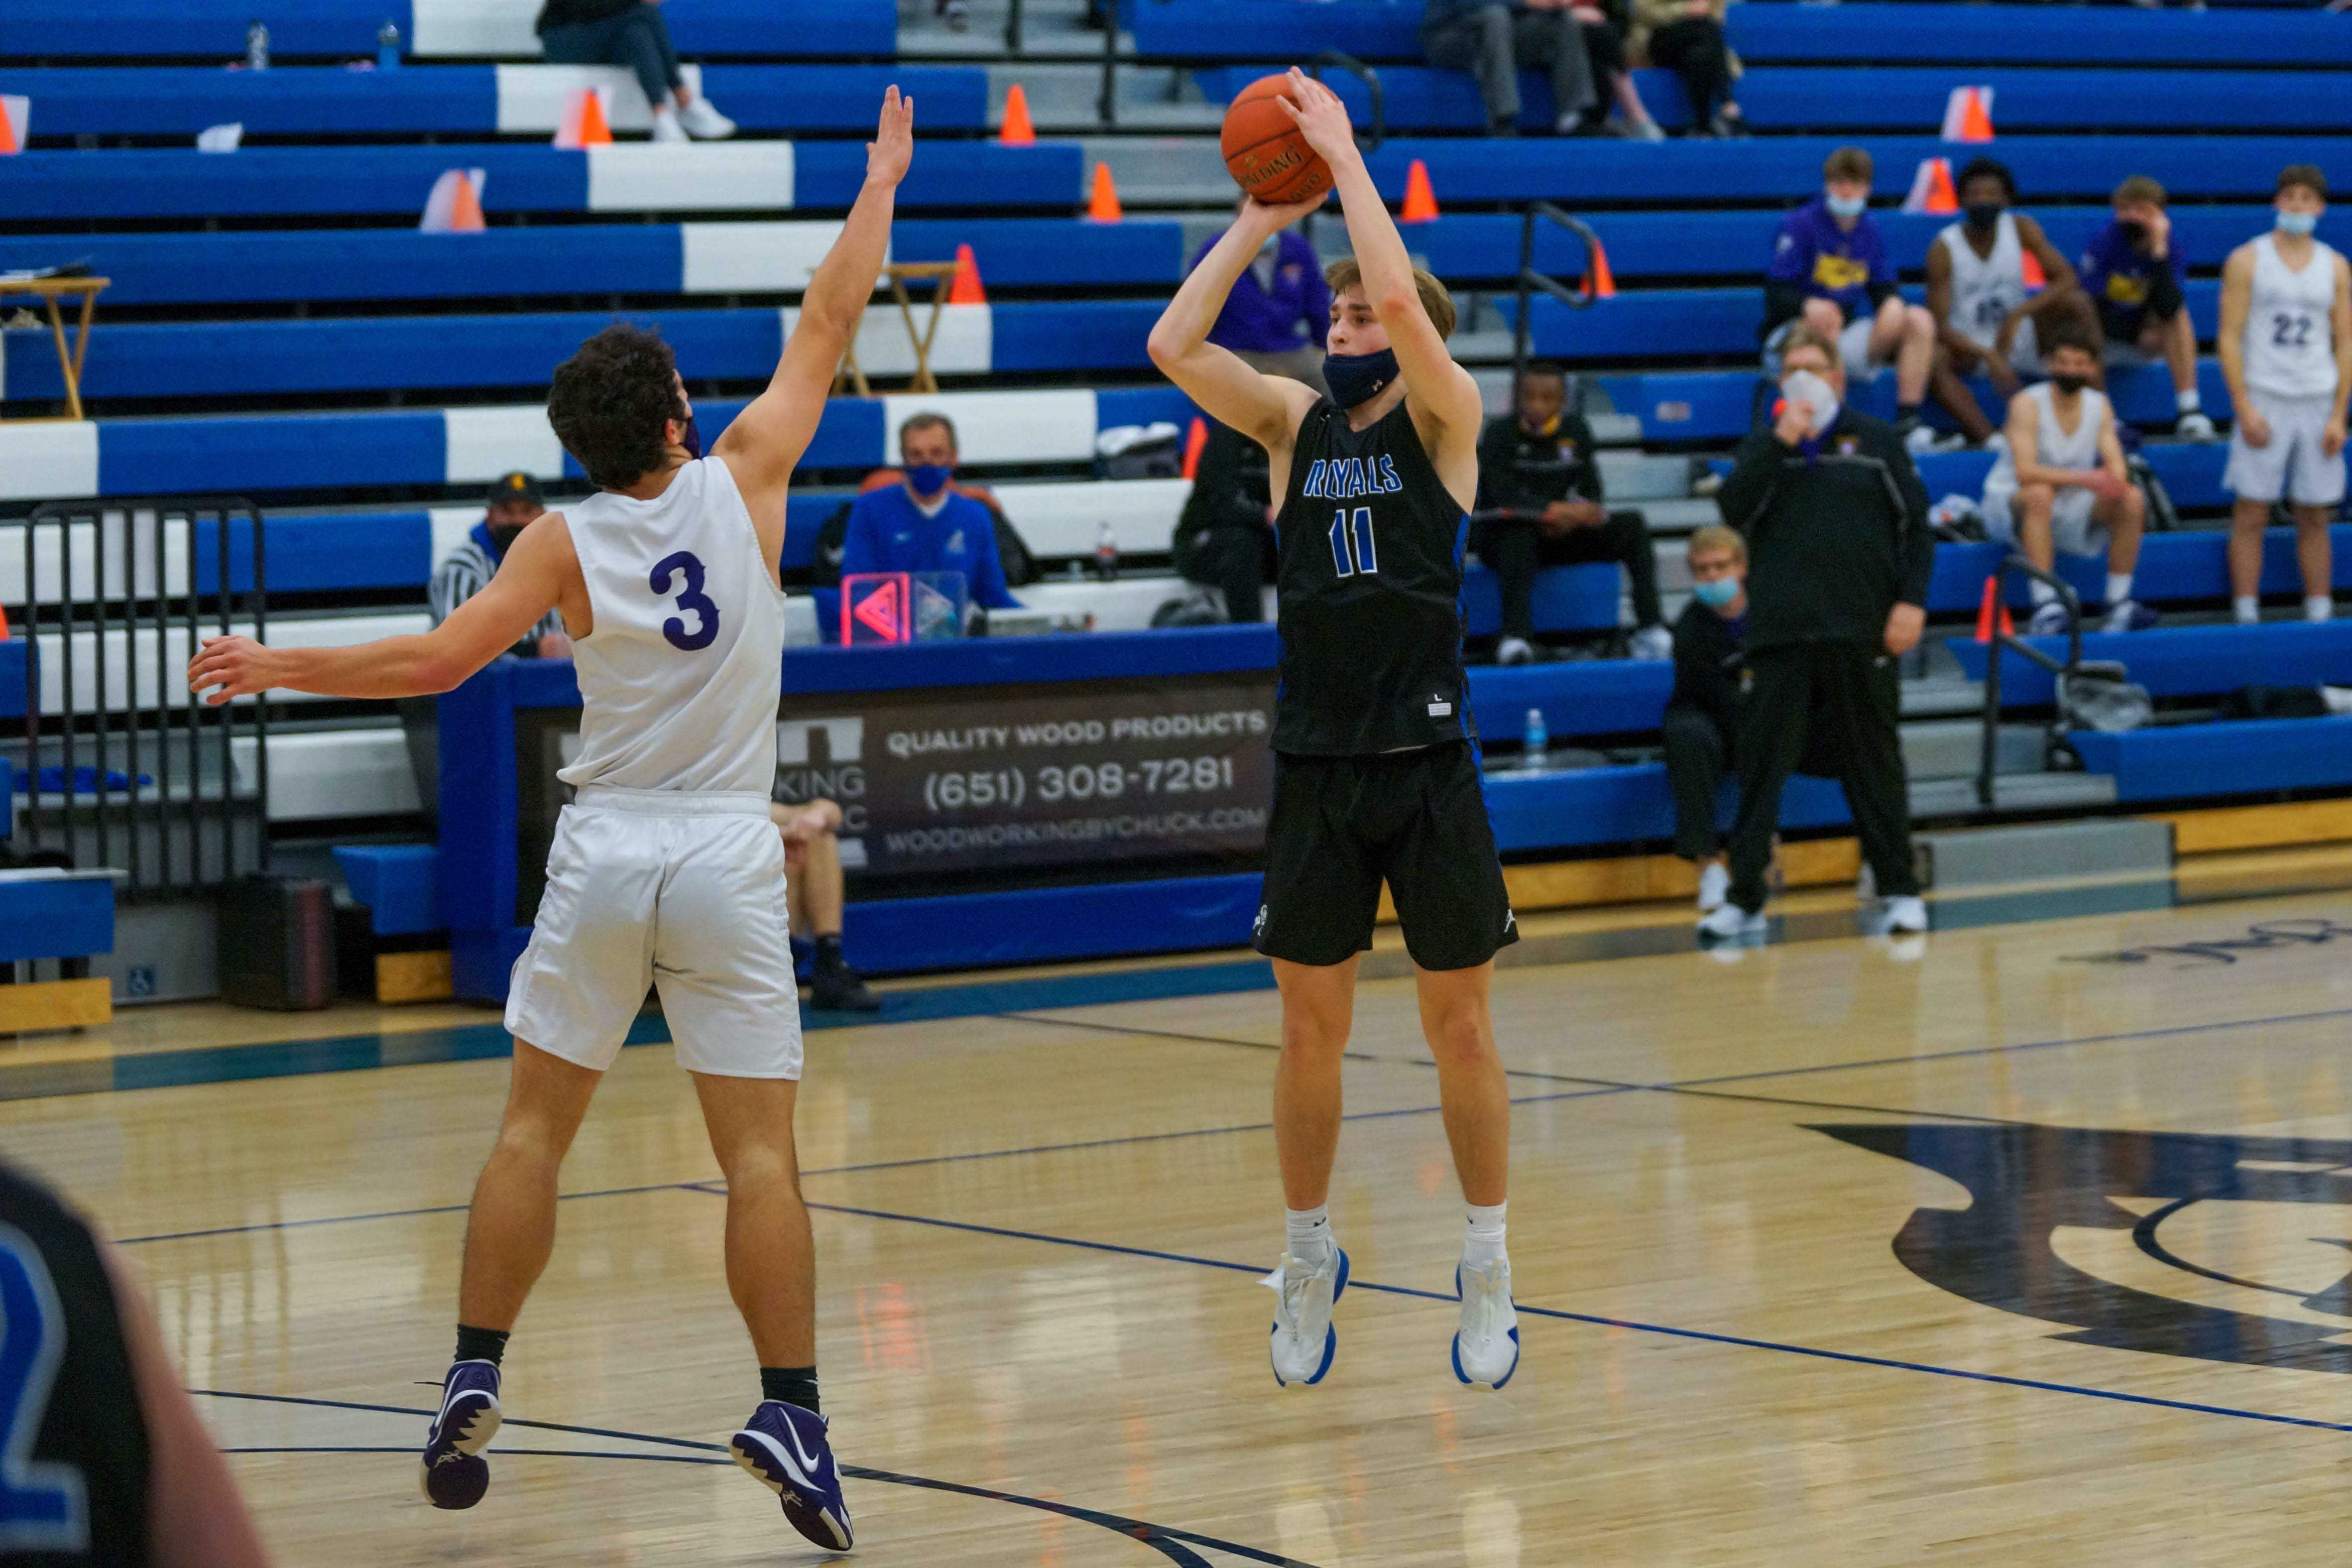 Woodbury senior guard Bradley Cimperman (11) led his team in scoring with 21 points, but the top-seeded Royals fell short of their state tournament aspirations by losing 58-55 Friday night. Photo by Korey McDermott, SportsEngine